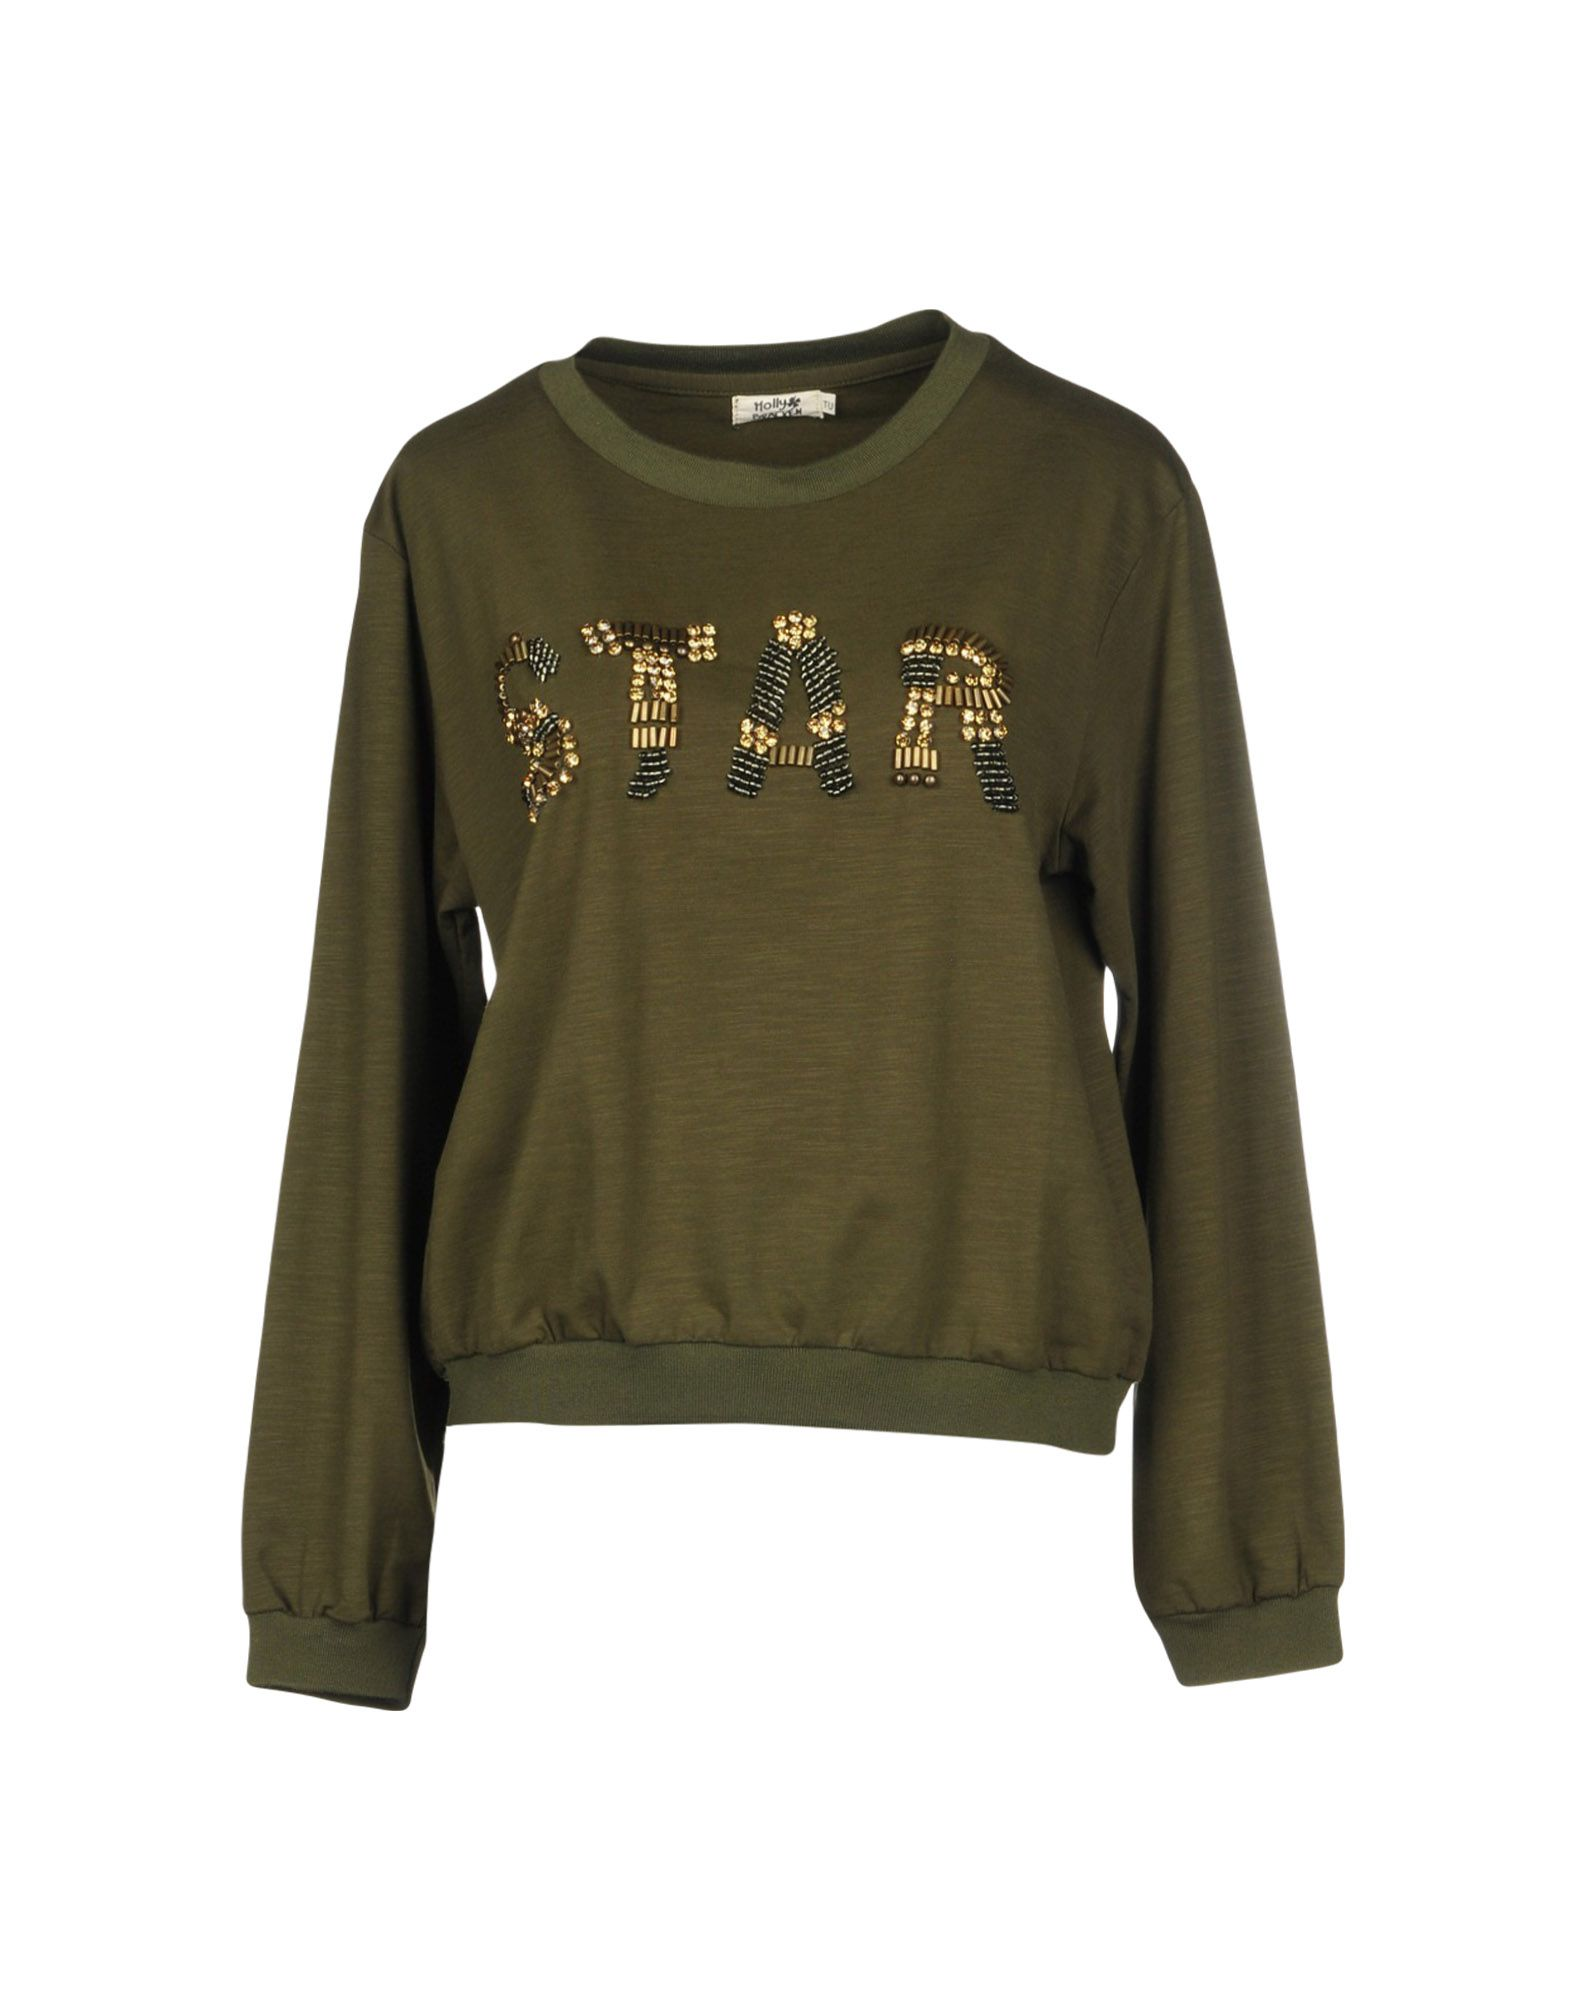 MOLLY BRACKEN Sweatshirt in Military Green